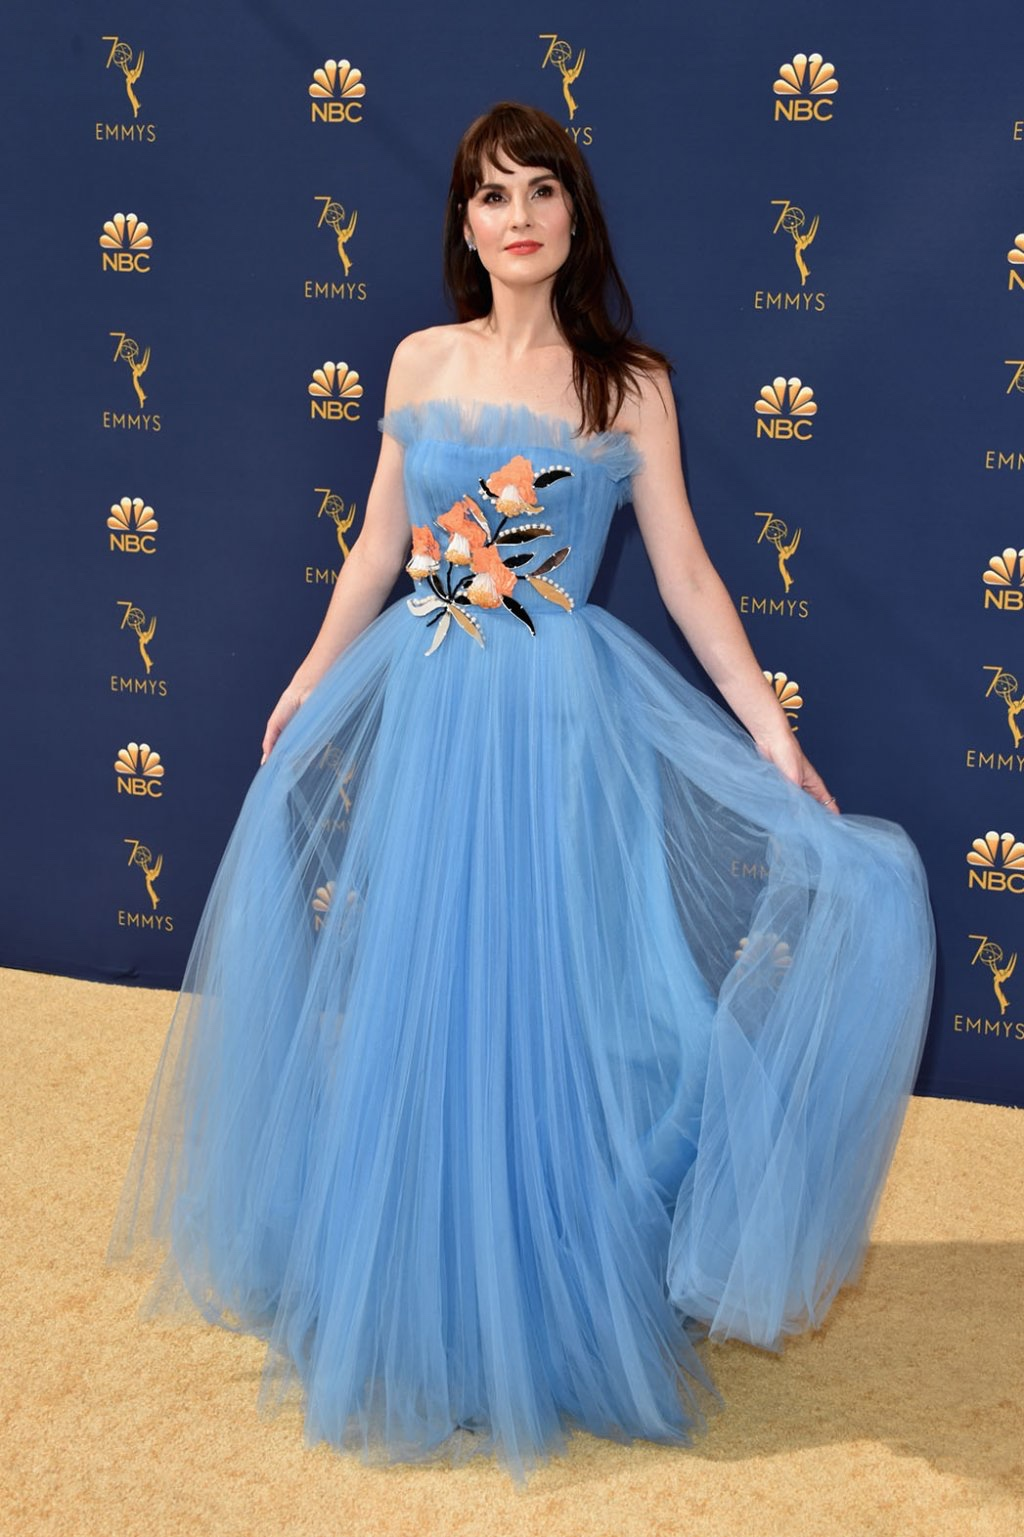 Michelle Dockery in Carolina Herrera, 70th Annual Primetime Emmy Awards, Betty White, Emmys 2018, Fashion, Featured, Glenn Weiss, Hannah Gadsby, highlights, Jav Svendsen, Online Exclusive, Style, The Marvellous Mrs. Maisel, top moments, We solved it, Diversity